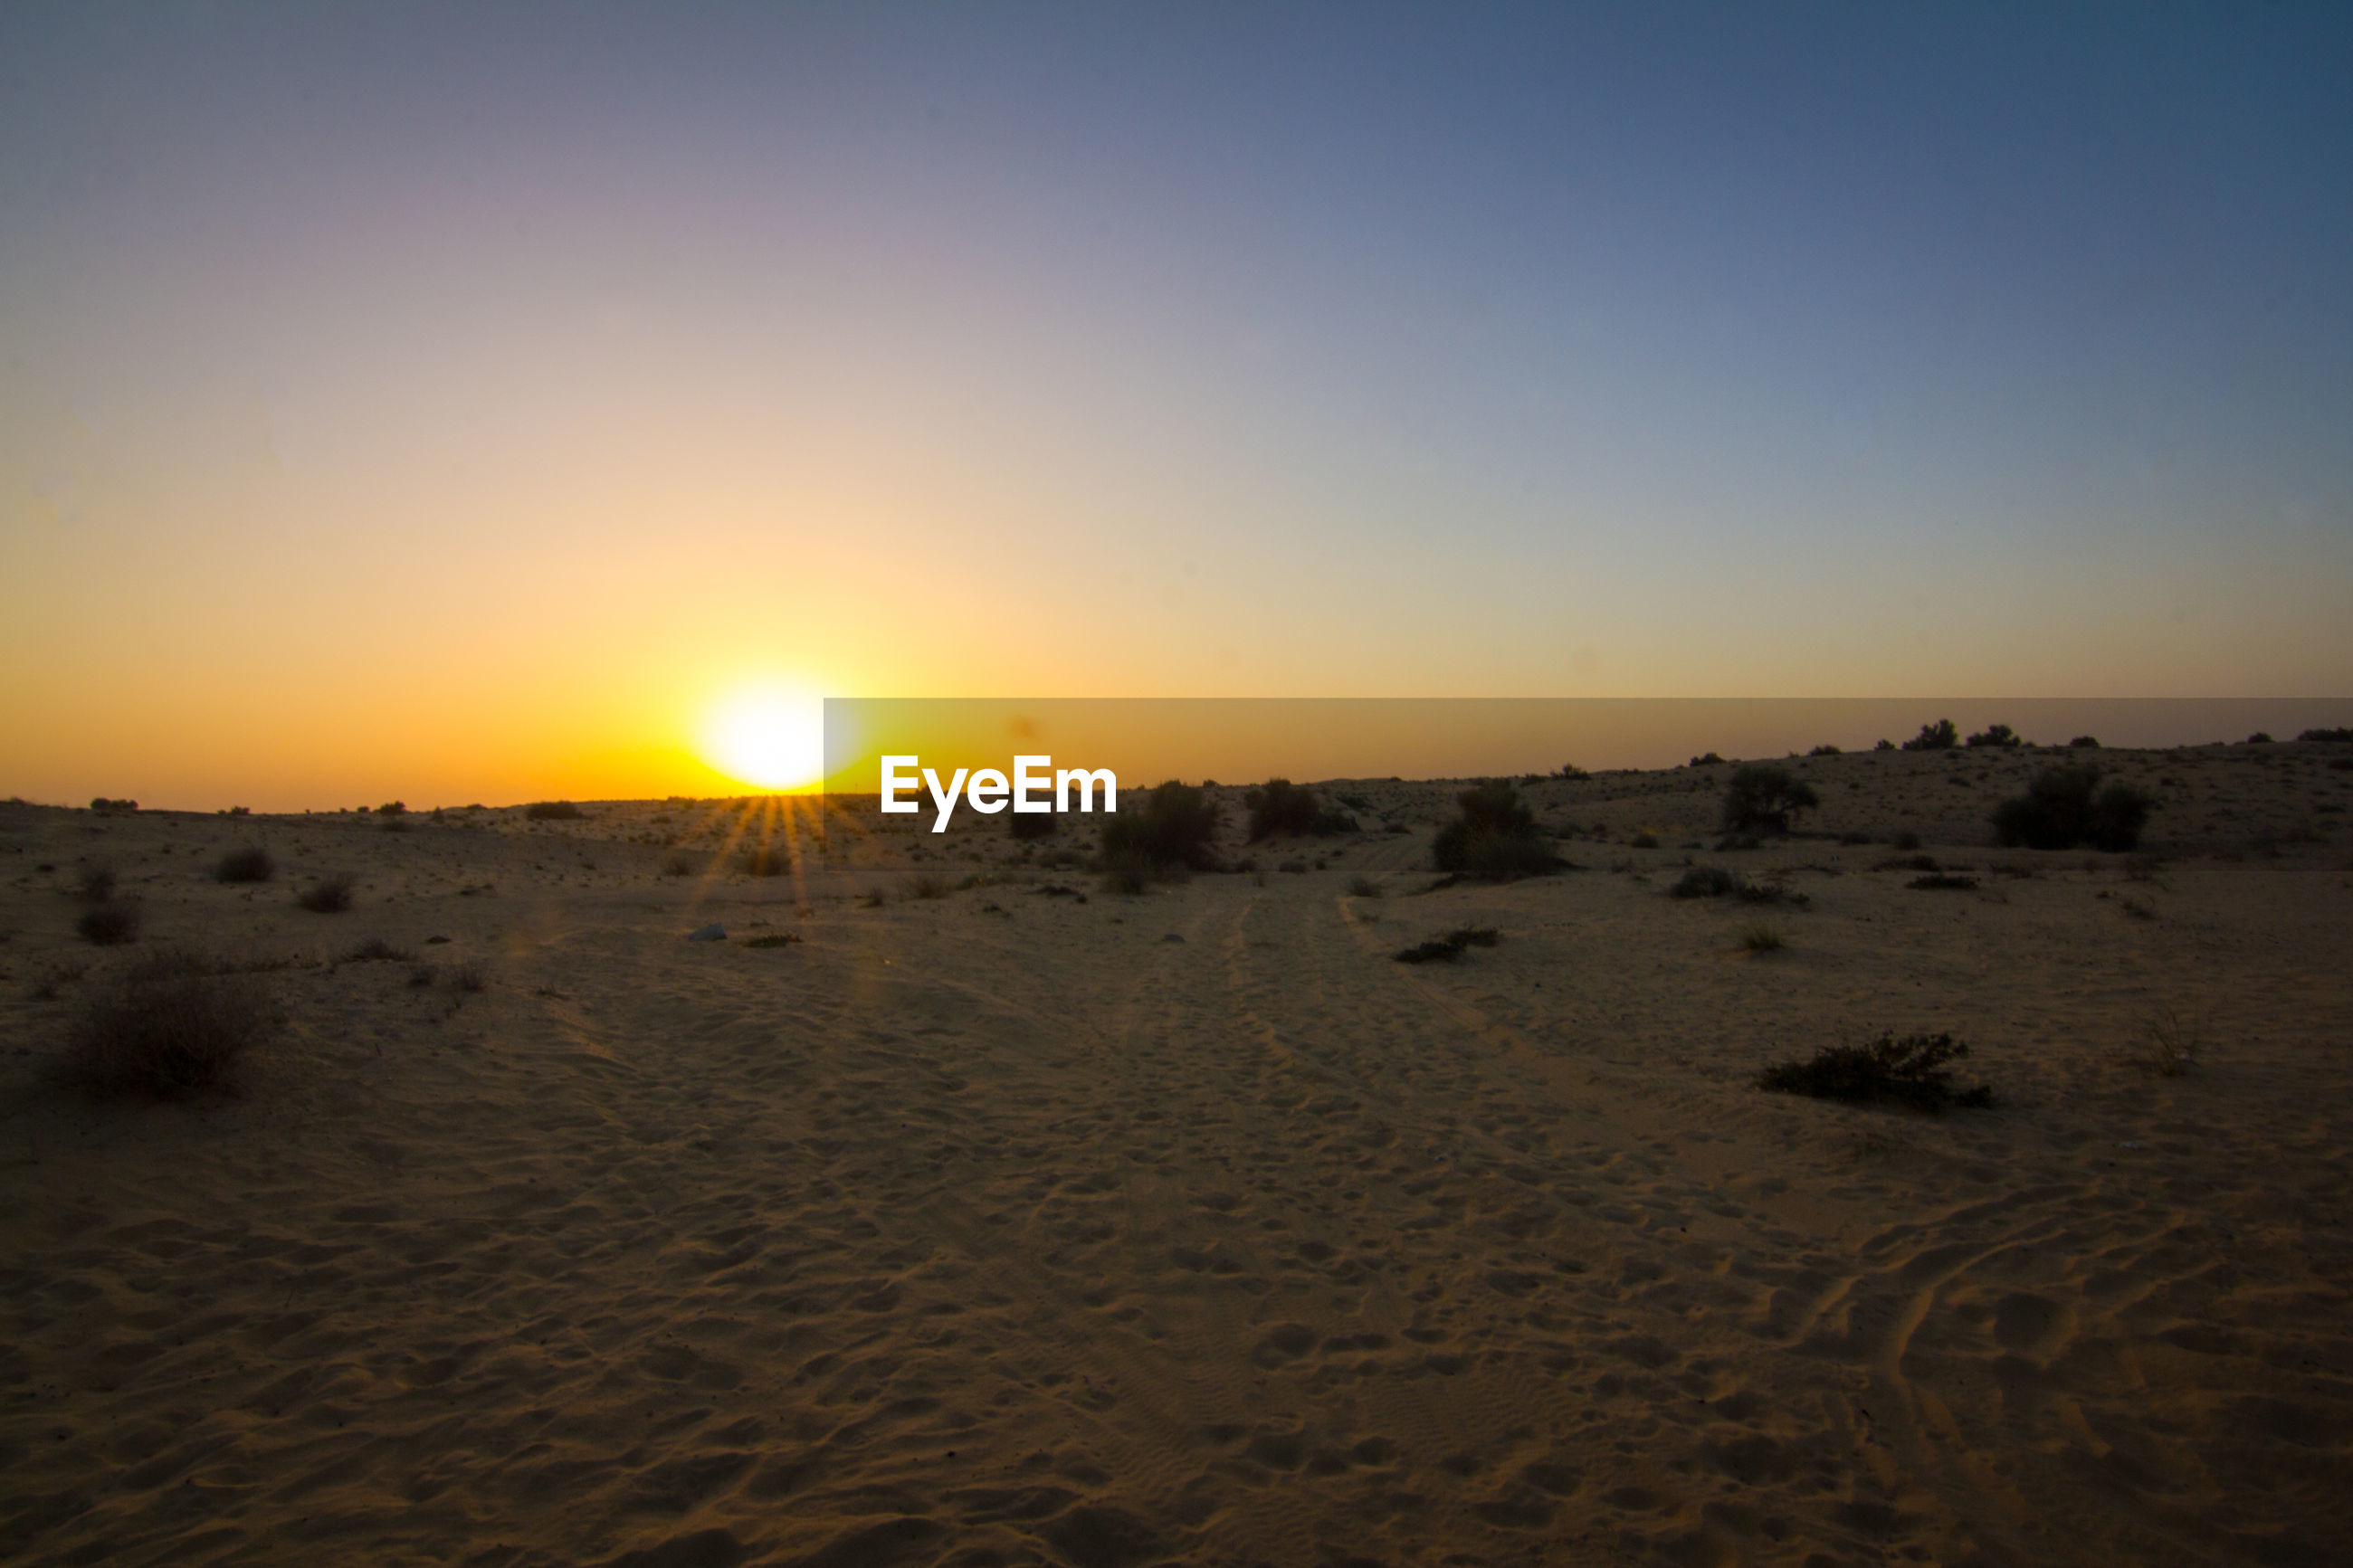 SCENIC VIEW OF DESERT AGAINST CLEAR SKY AT SUNSET